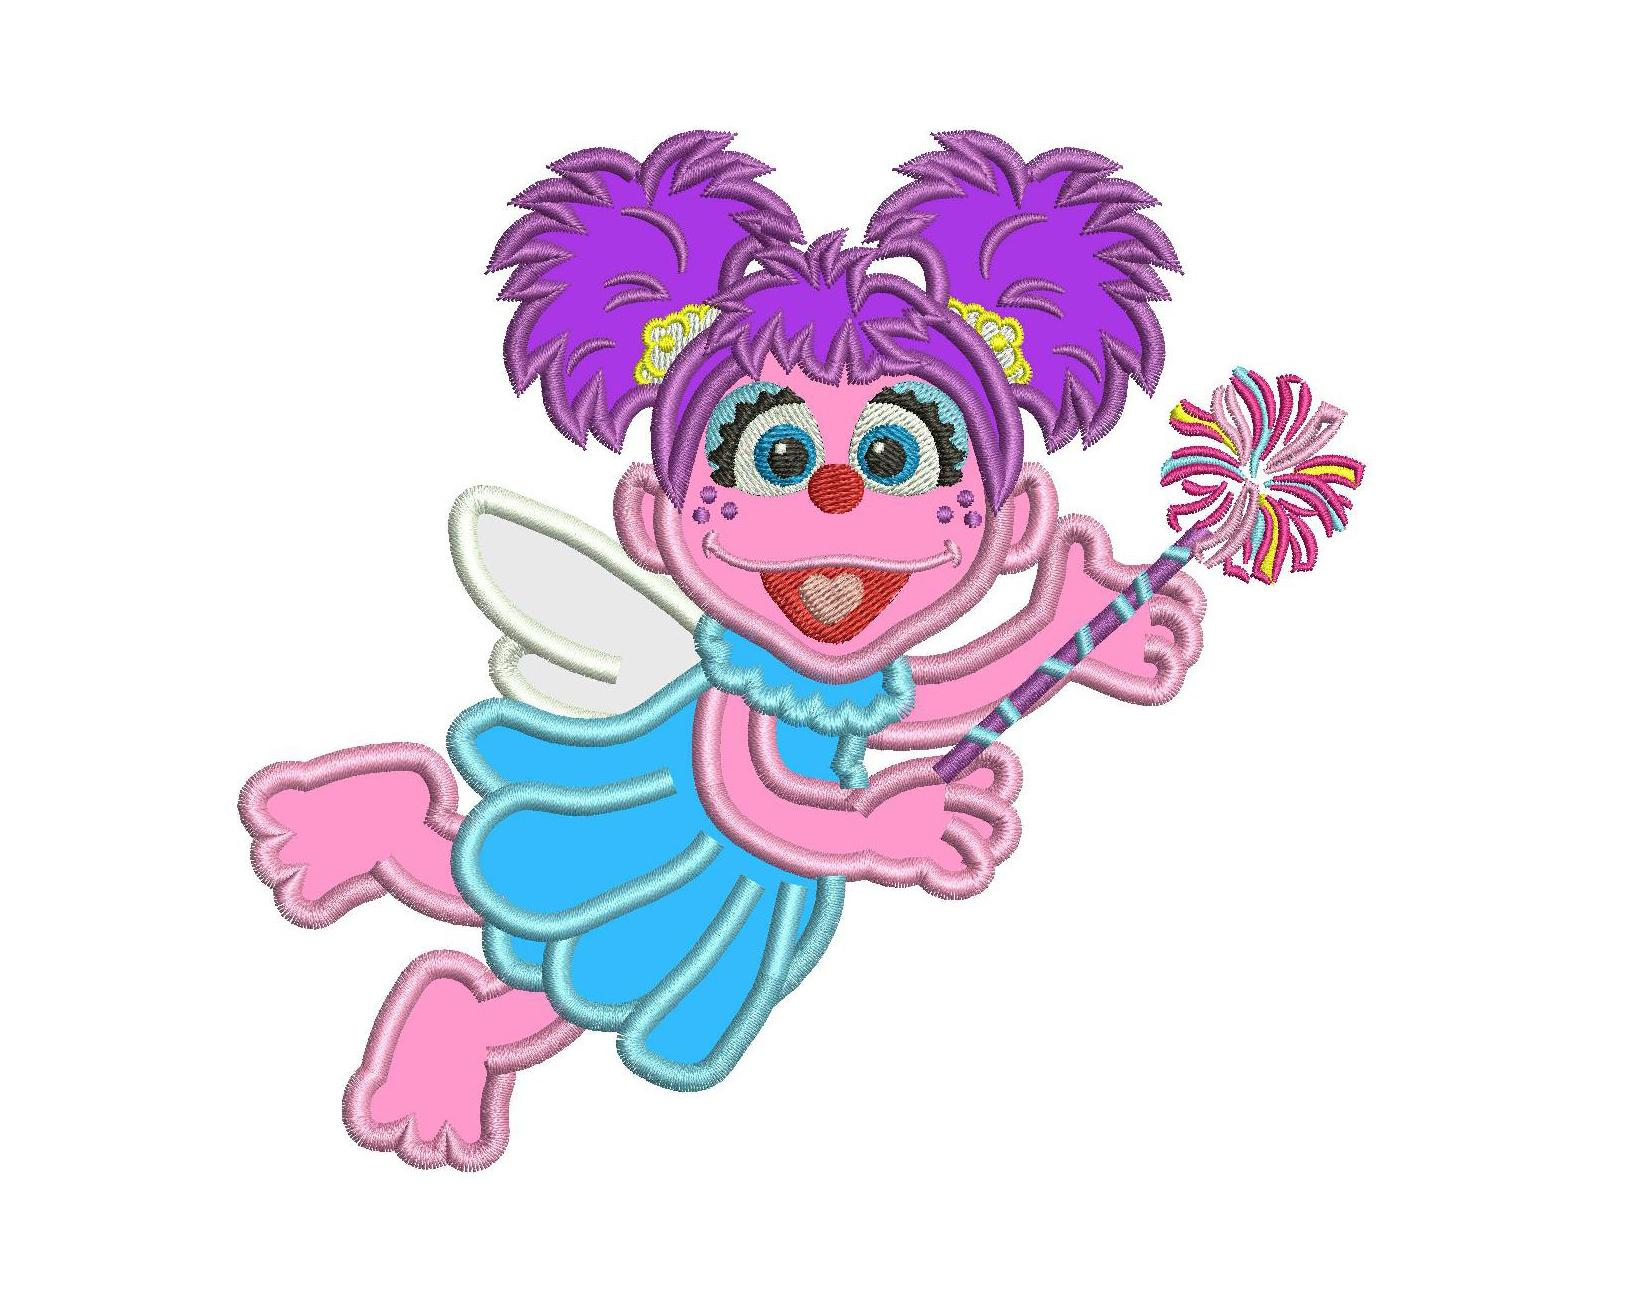 1625x1299 Abby Cadabby Applique Design Abby Applique